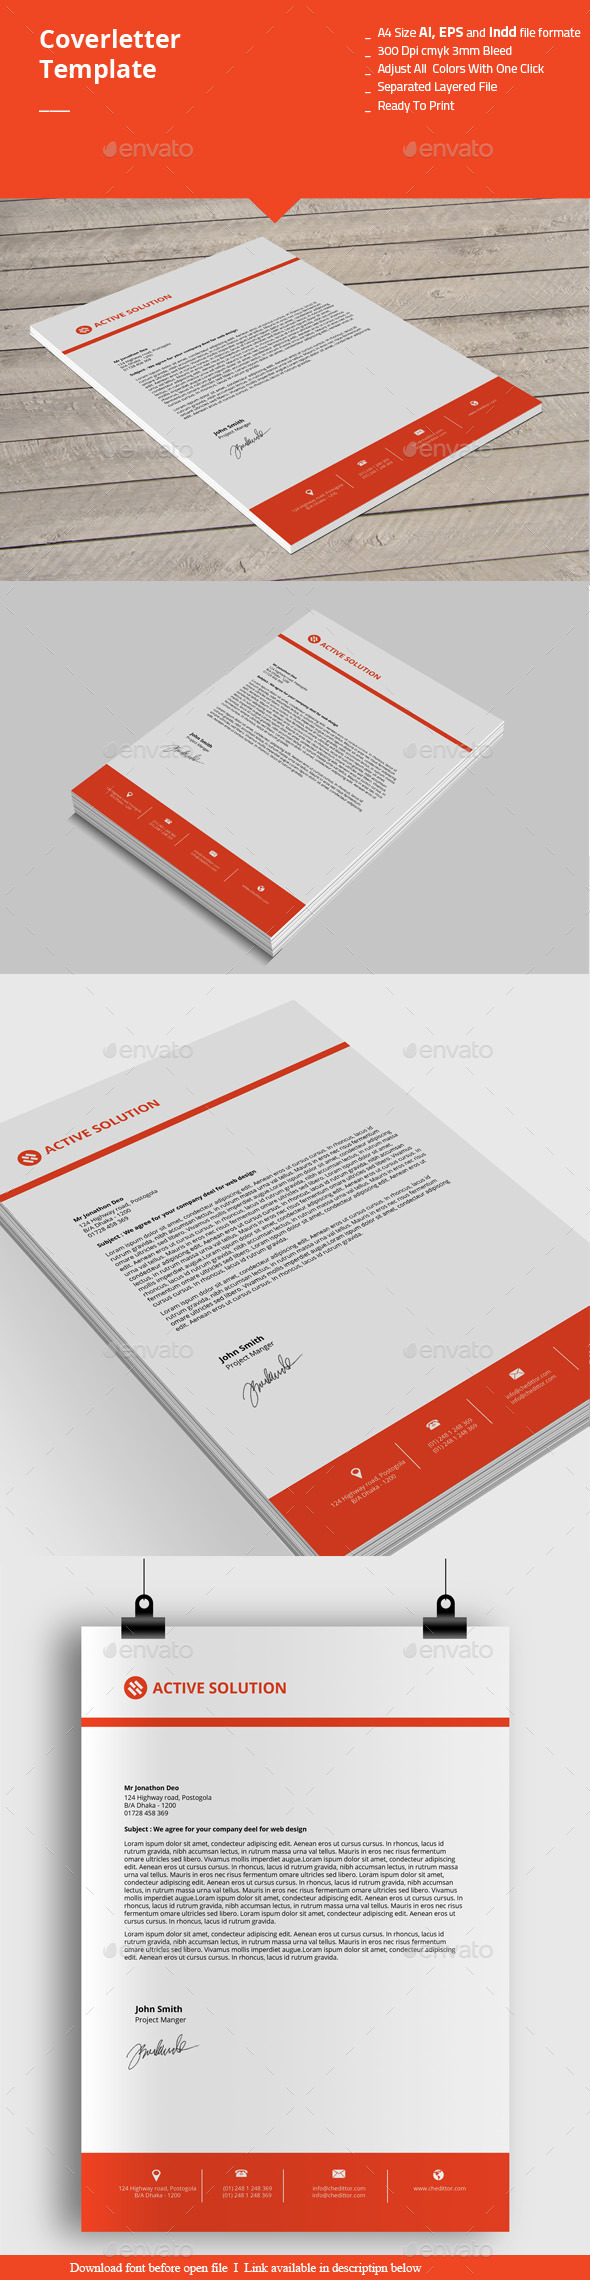 GraphicRiver Coverletter Templates 10223974